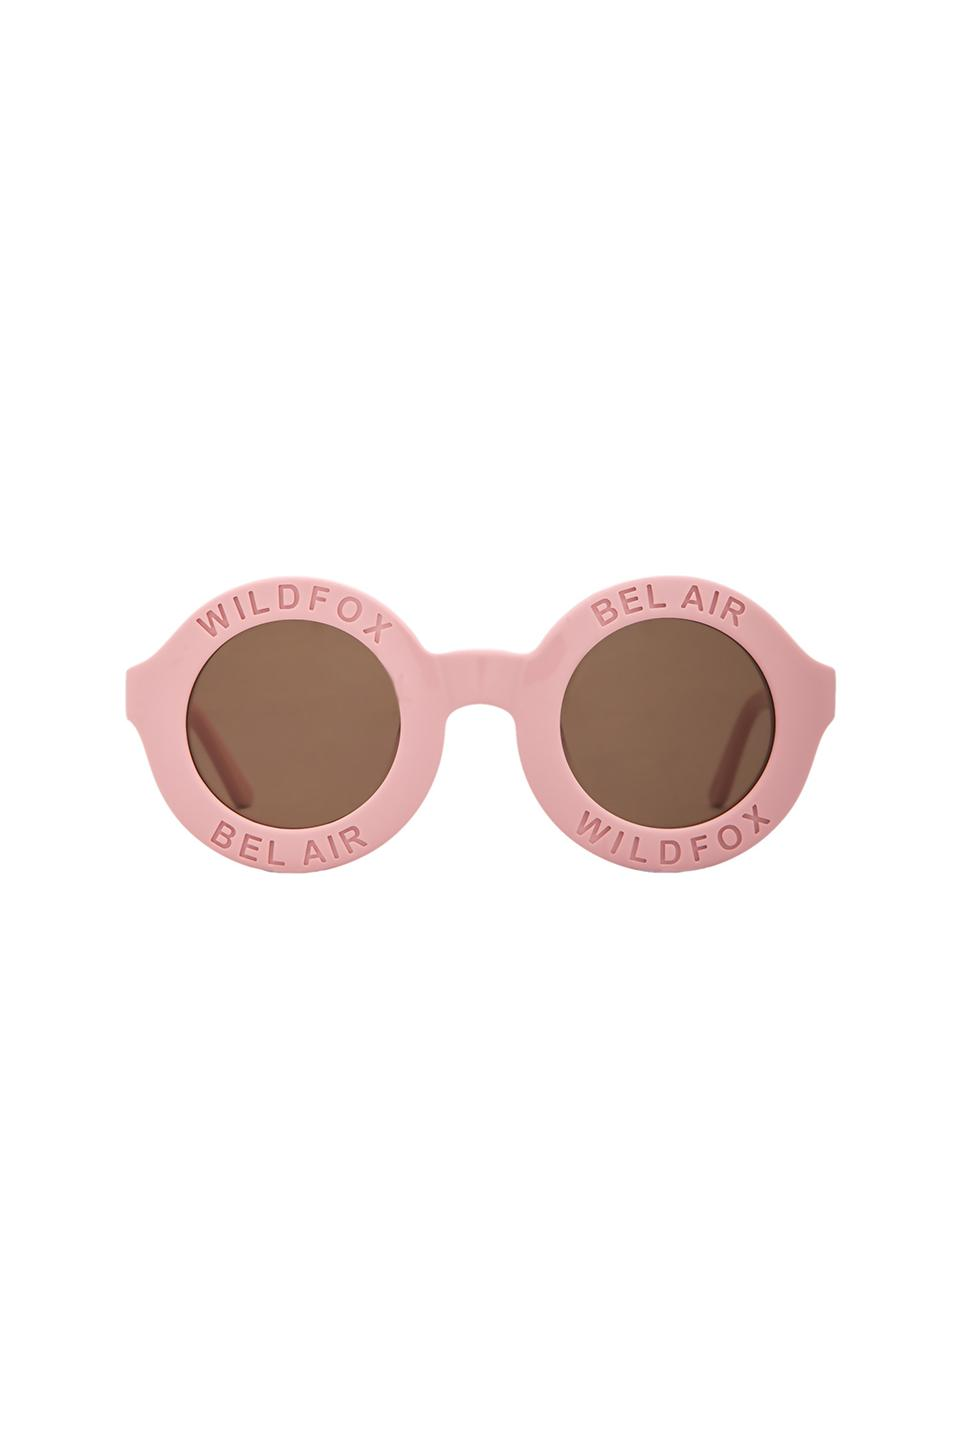 Wildfox Couture Bel Air Sunglasses in Pink & Brown | REVOLVE